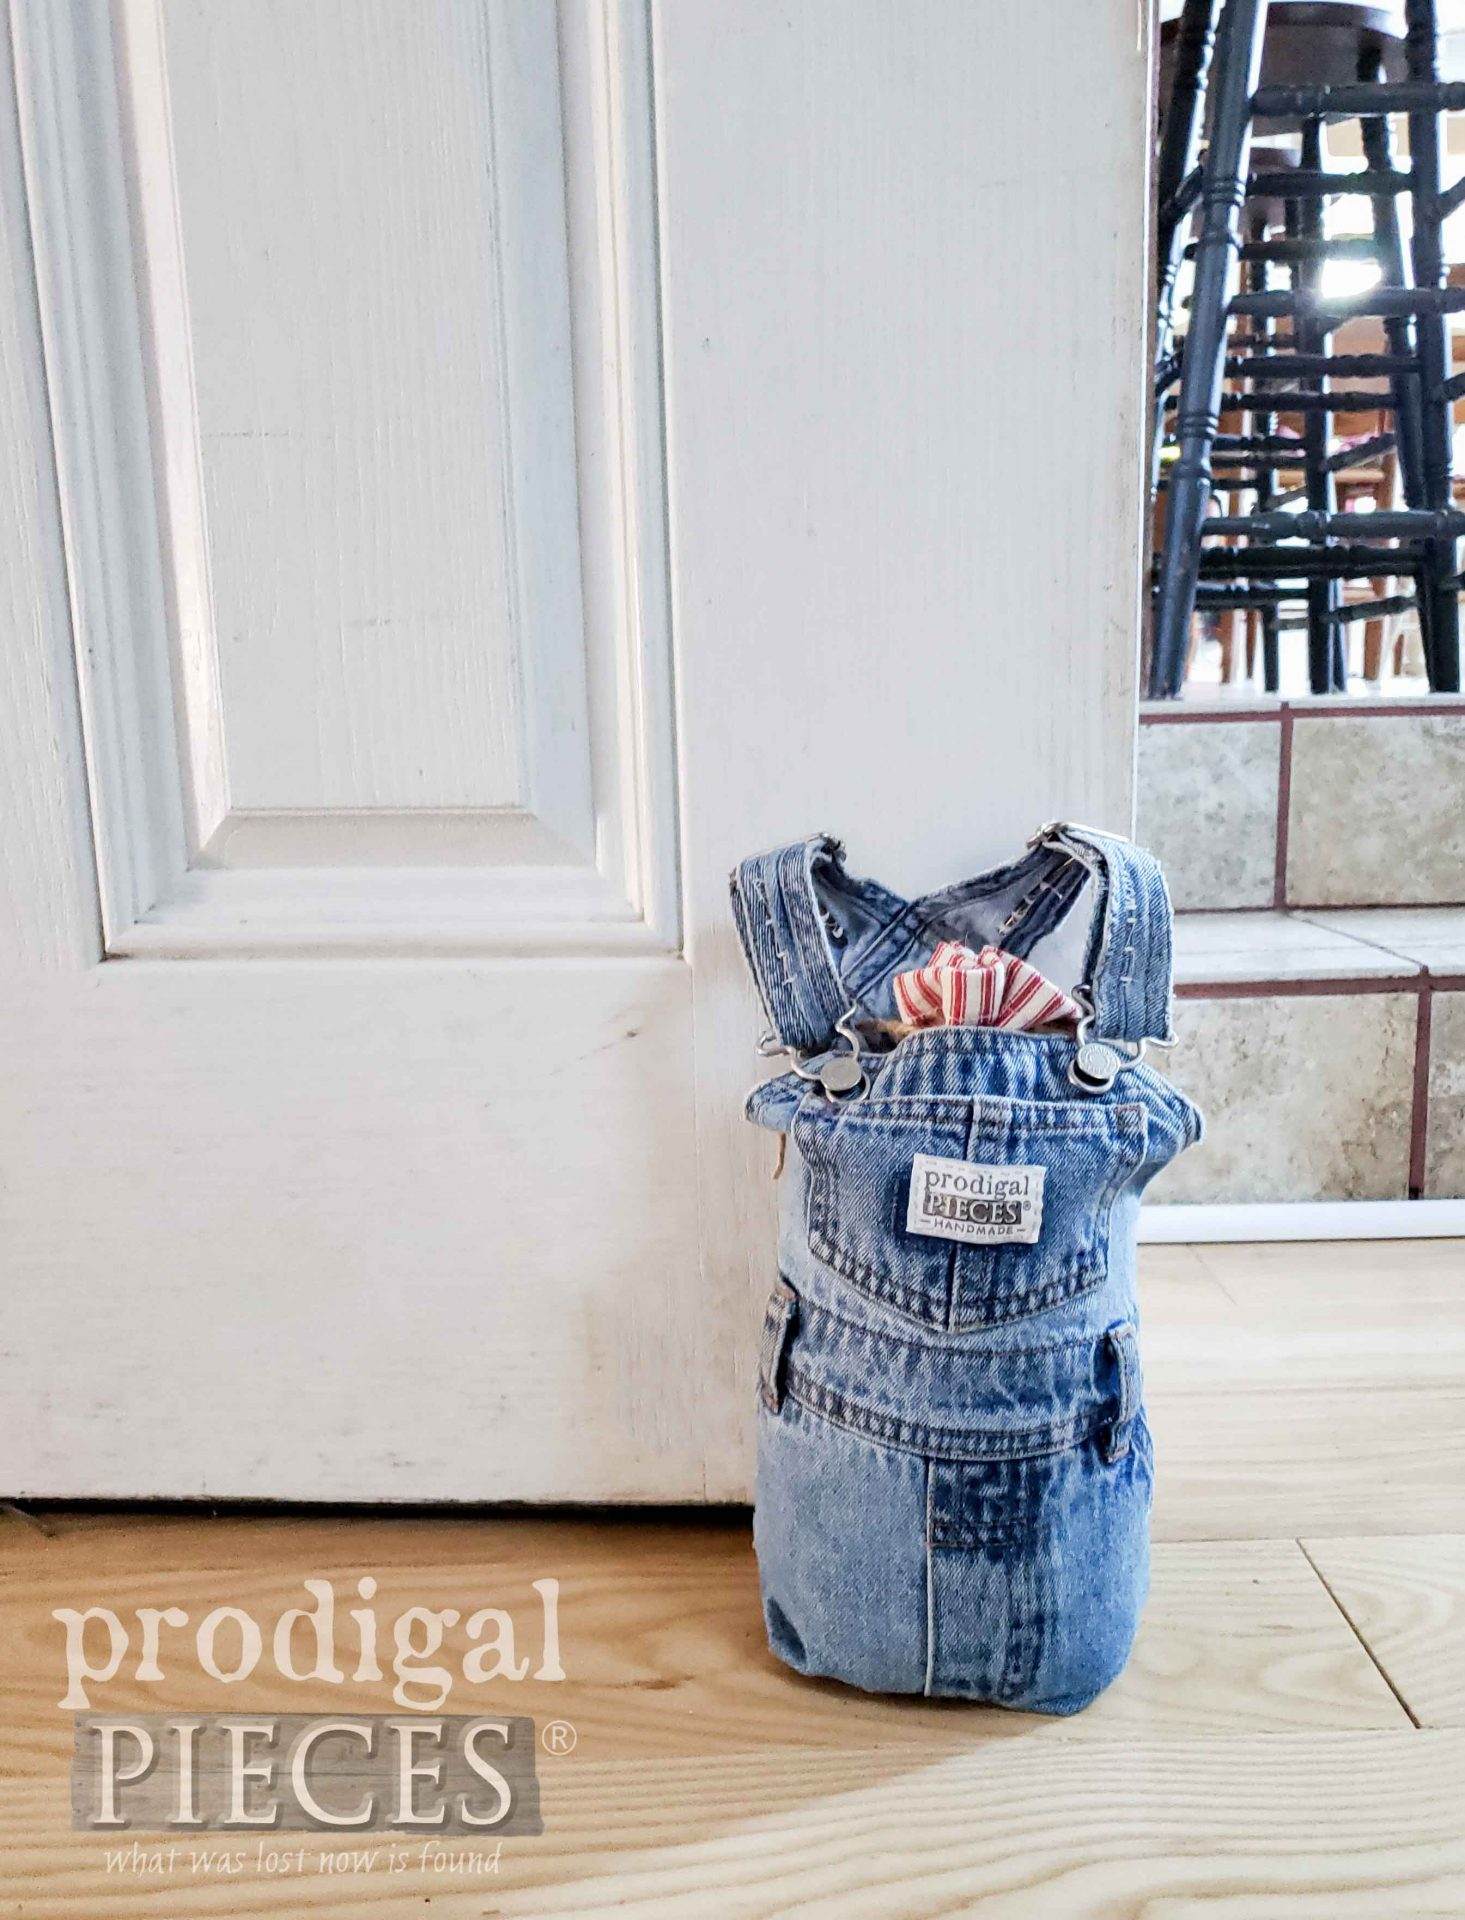 Farmhouse Style DIY Doorstop Made from Upcycled Baby Bib Overalls by Larissa of Prodigal Pieces | prodigalpieces.com #prodigalpieces #diy #home #homedecor #farmhouse #handmade #refashion